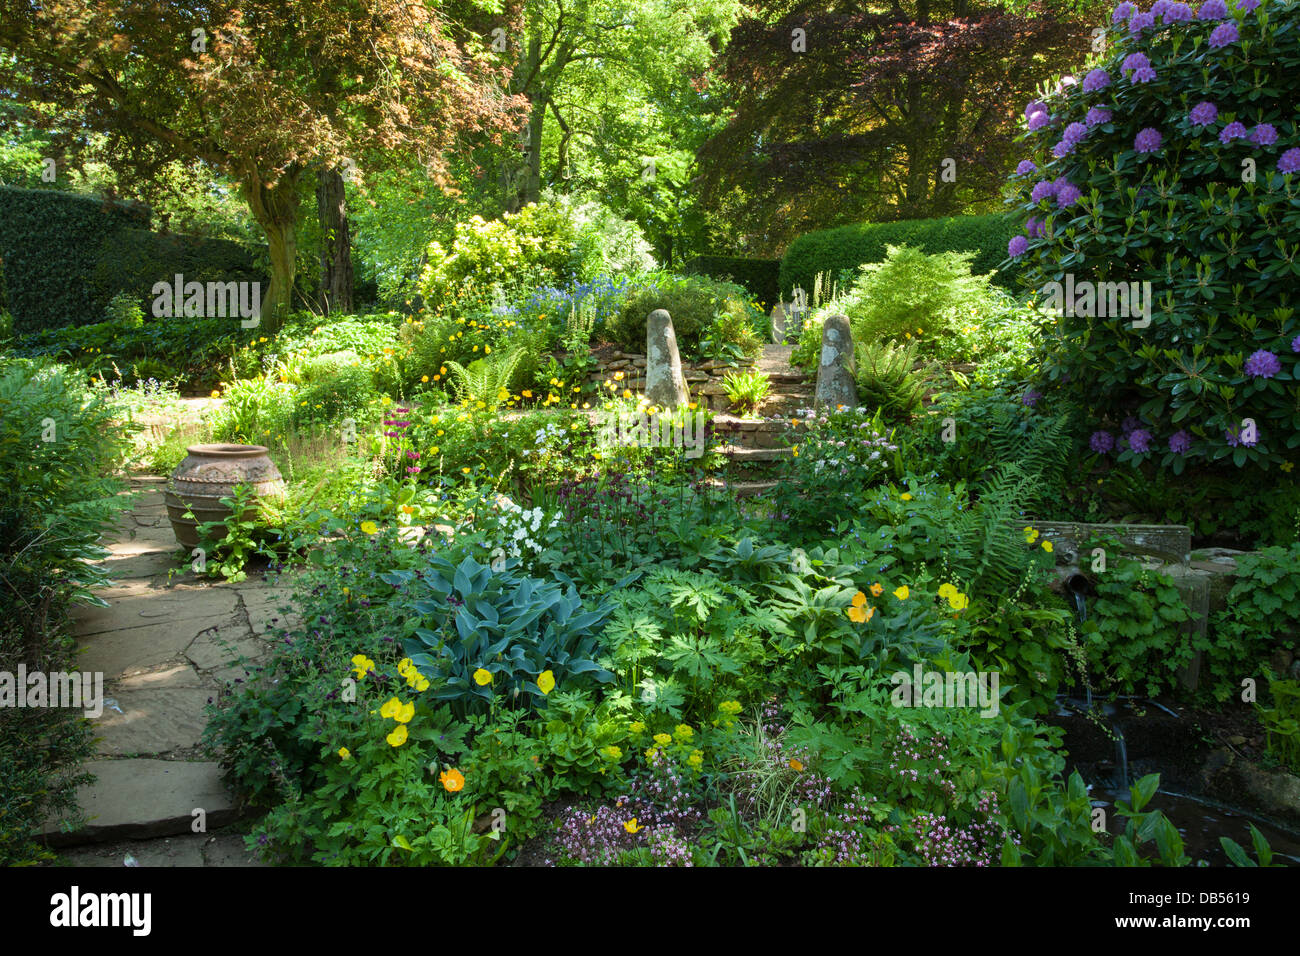 shady gardens stockfotos shady gardens bilder alamy. Black Bedroom Furniture Sets. Home Design Ideas